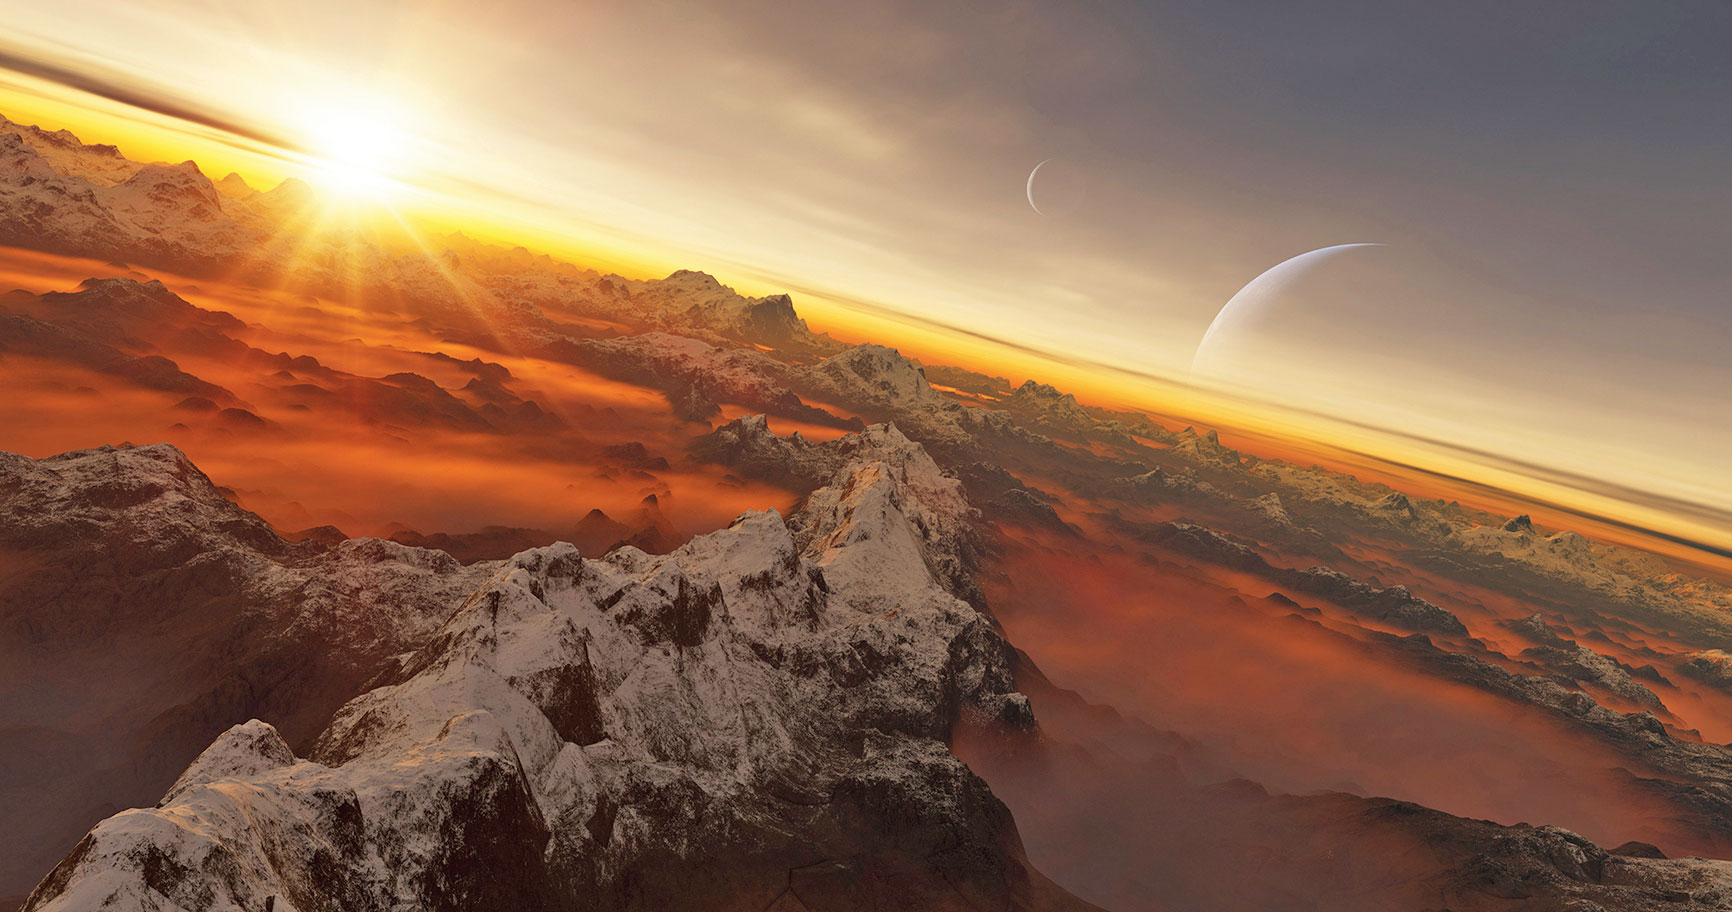 Hello Sauron: A handout image provided by the International Astronomical Union and astronomer Luis Calcada shows a rendering of an exoplanet